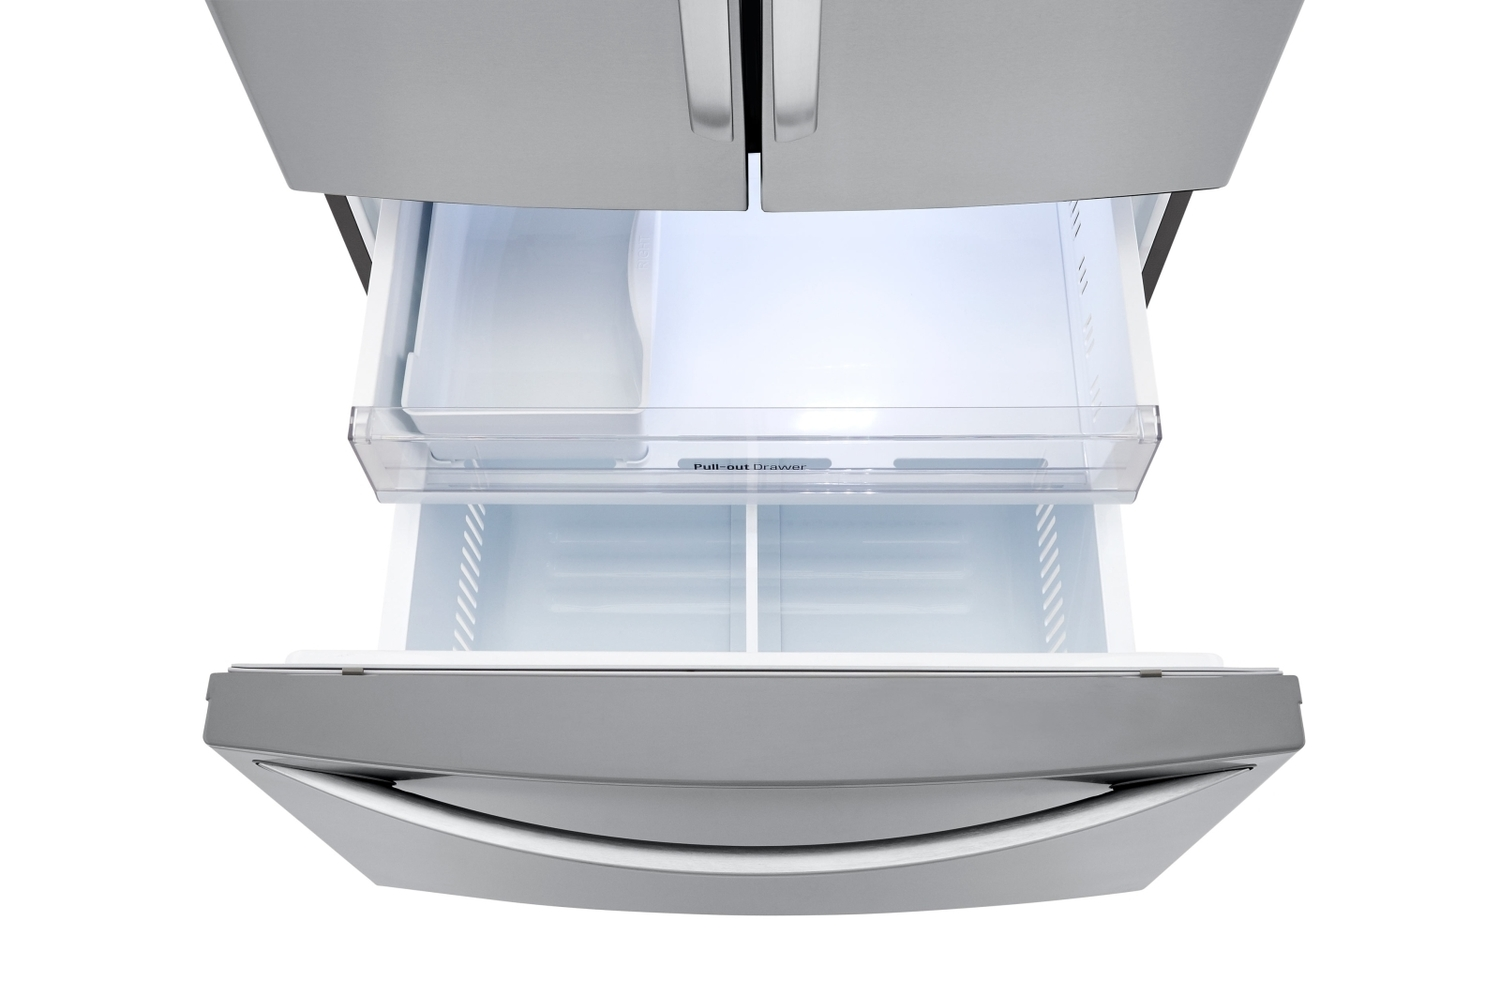 LFCC22426S LG Appliances 23 cu  ft  French Door Counter